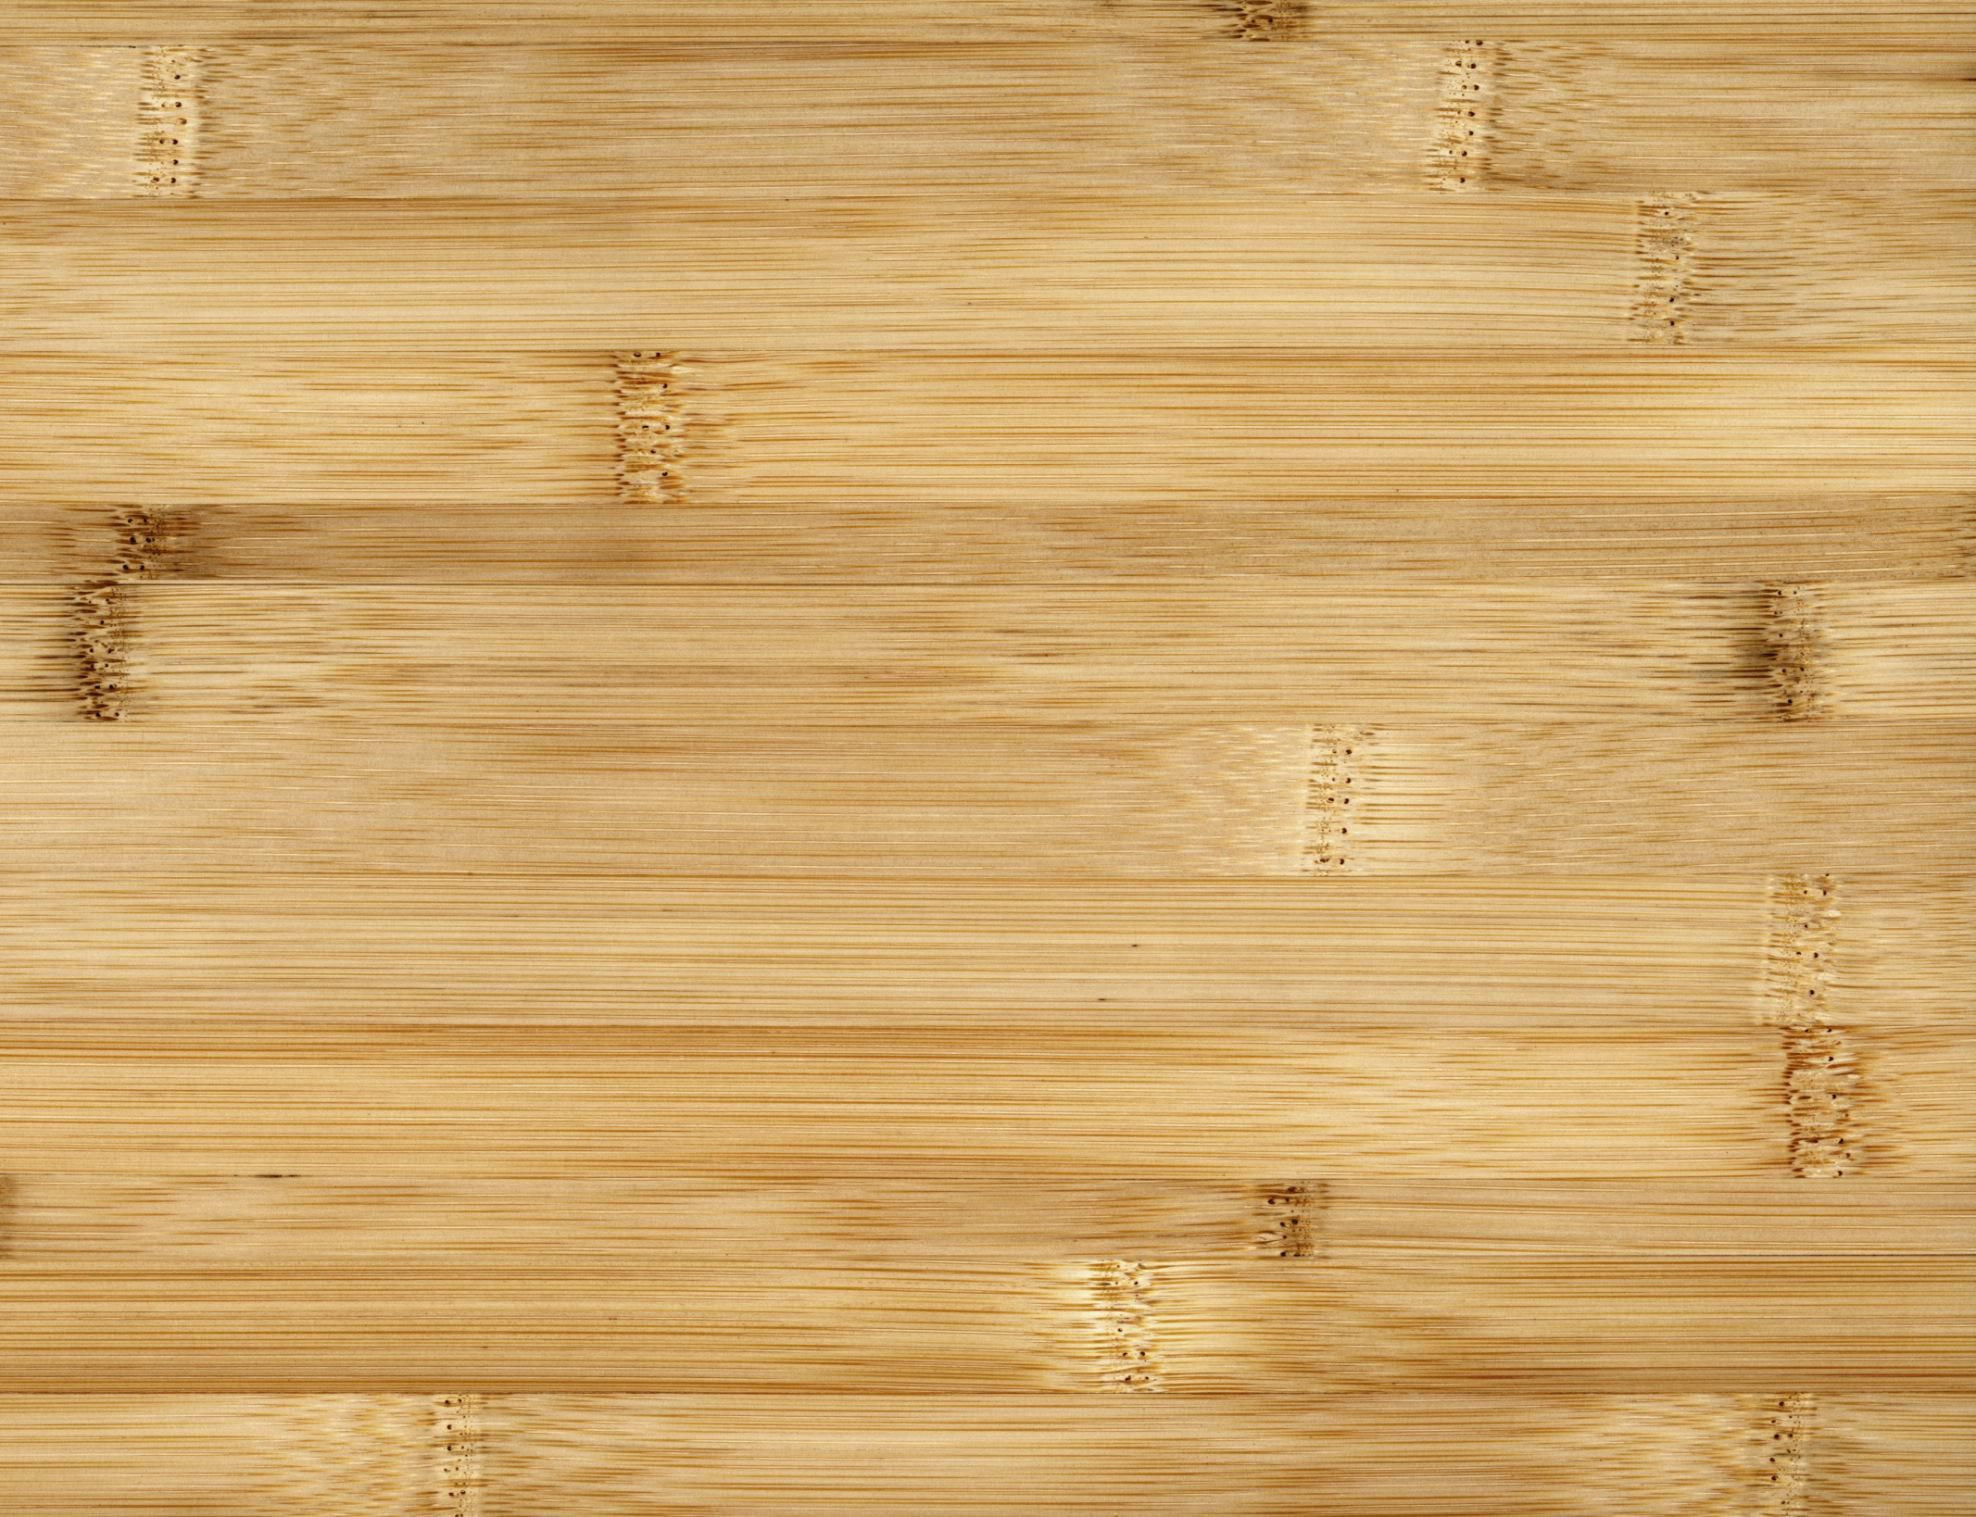 hardwood floor deep cleaning services of how to clean bamboo flooring throughout 200266305 001 56a2fd815f9b58b7d0d000cd